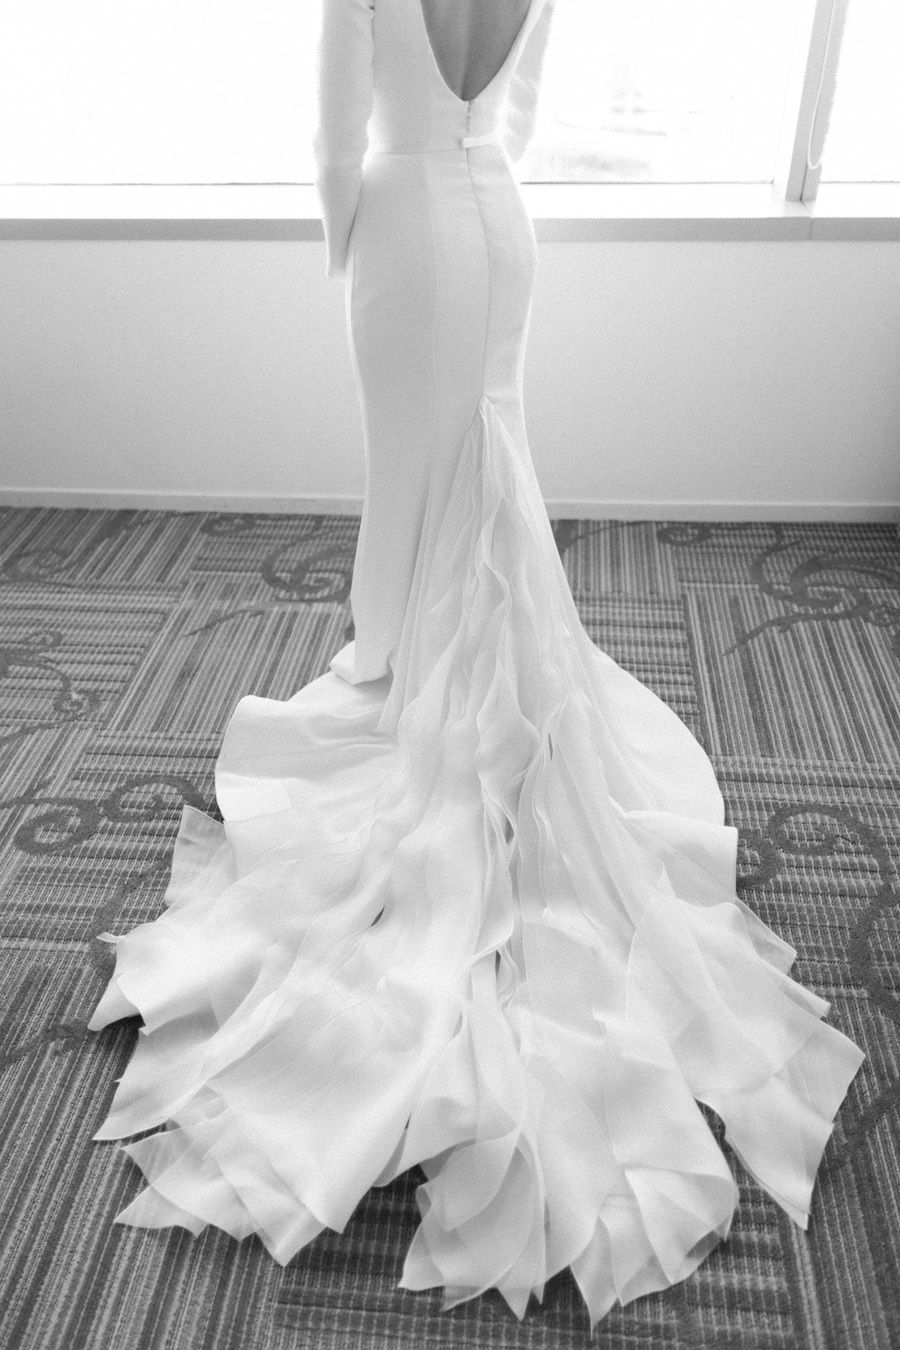 Downtown L.A. Wedding with Rooftop Views   Modest wedding dresses ...